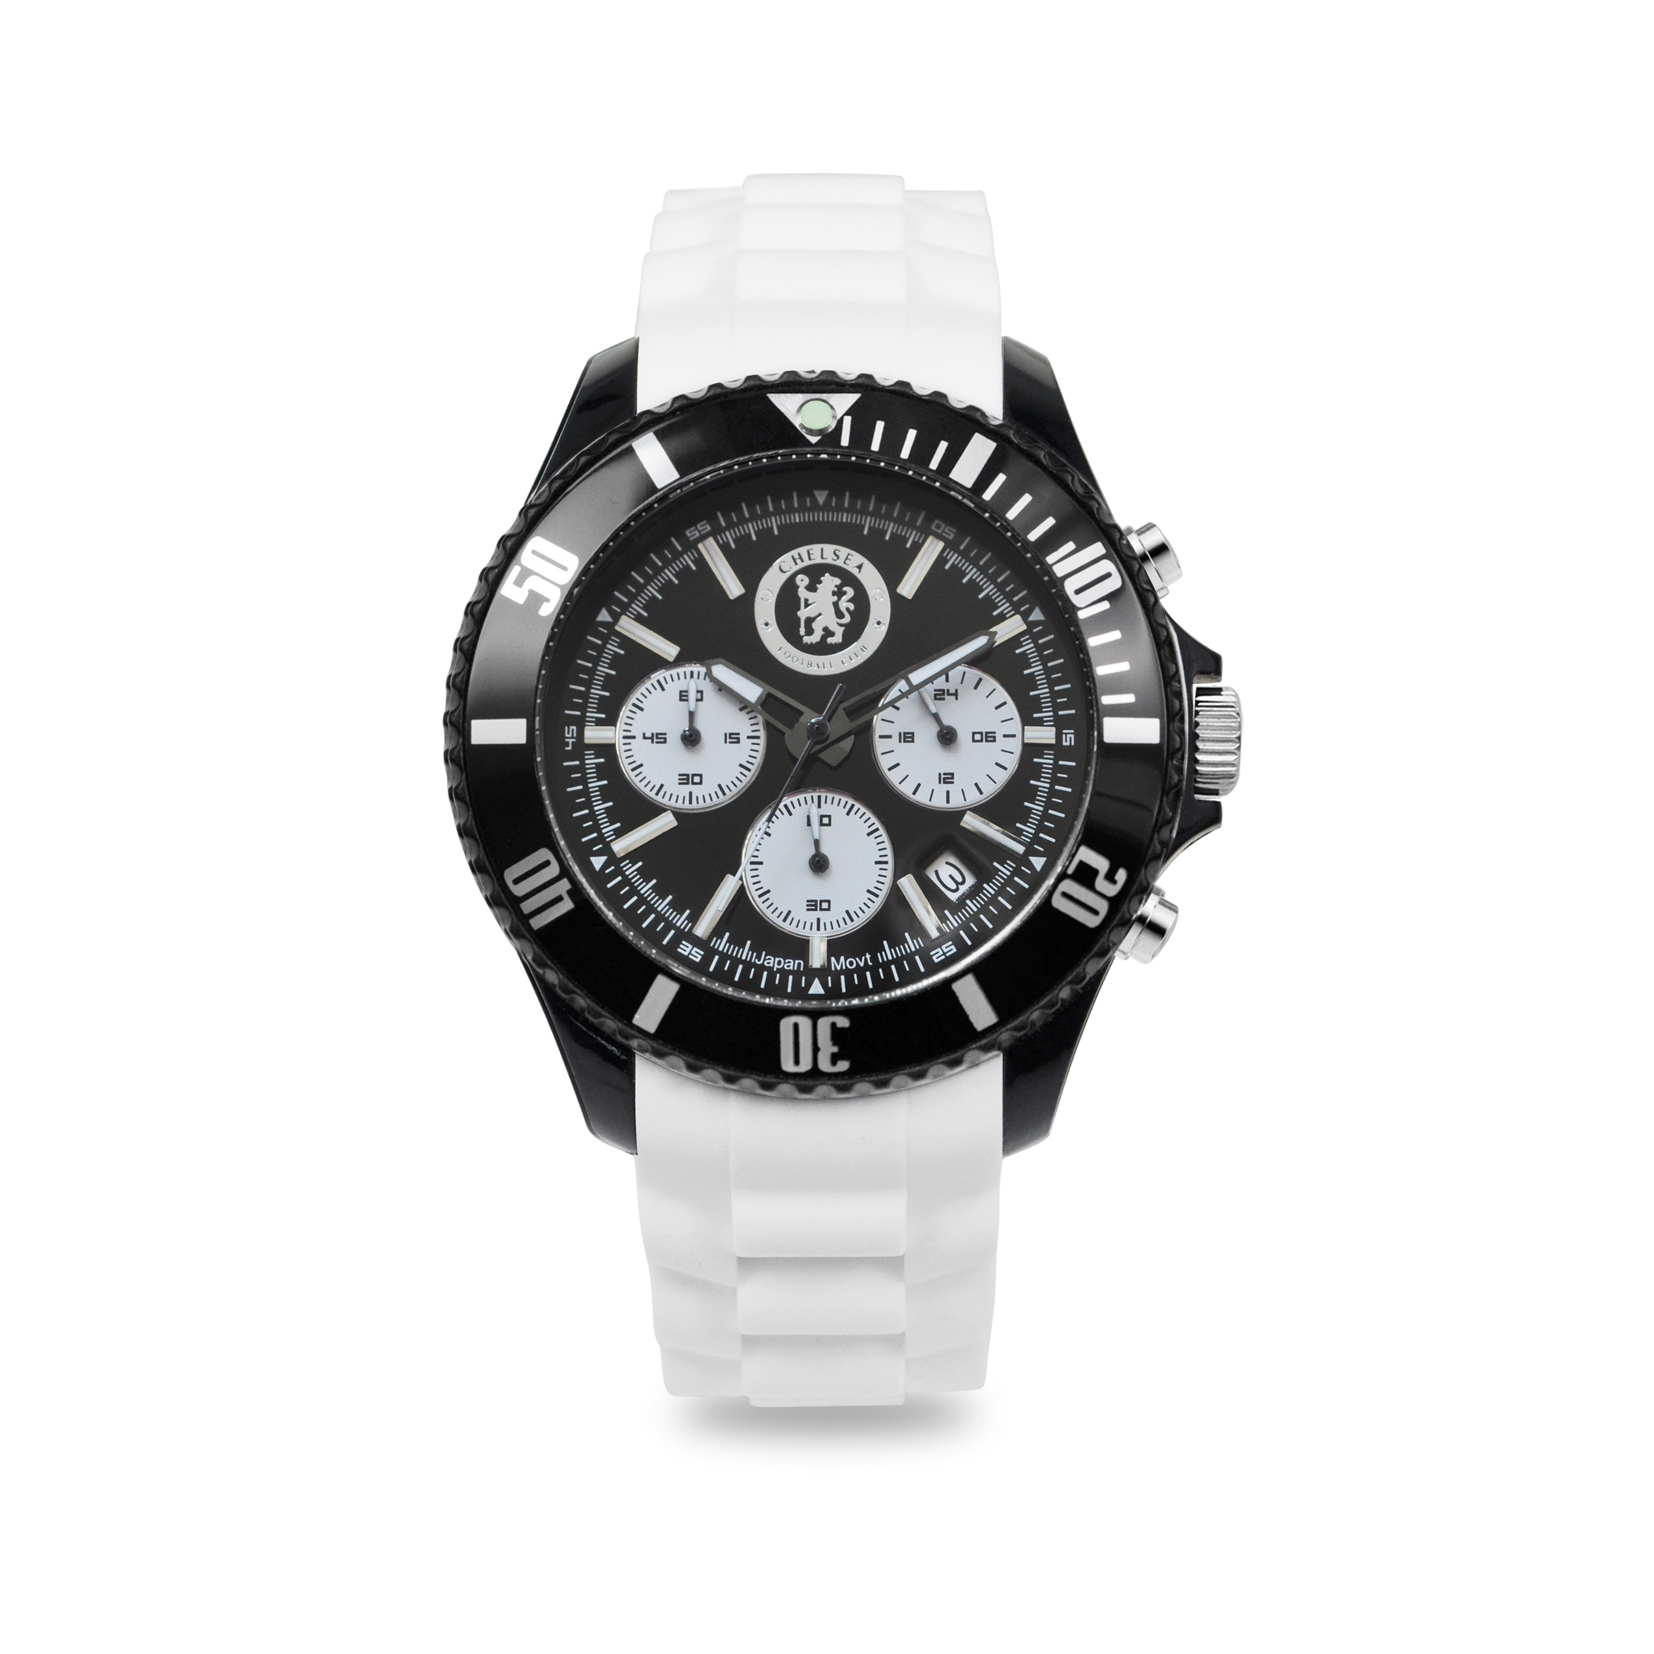 Chelsea Silicon Strap Chronograph Watch with Date